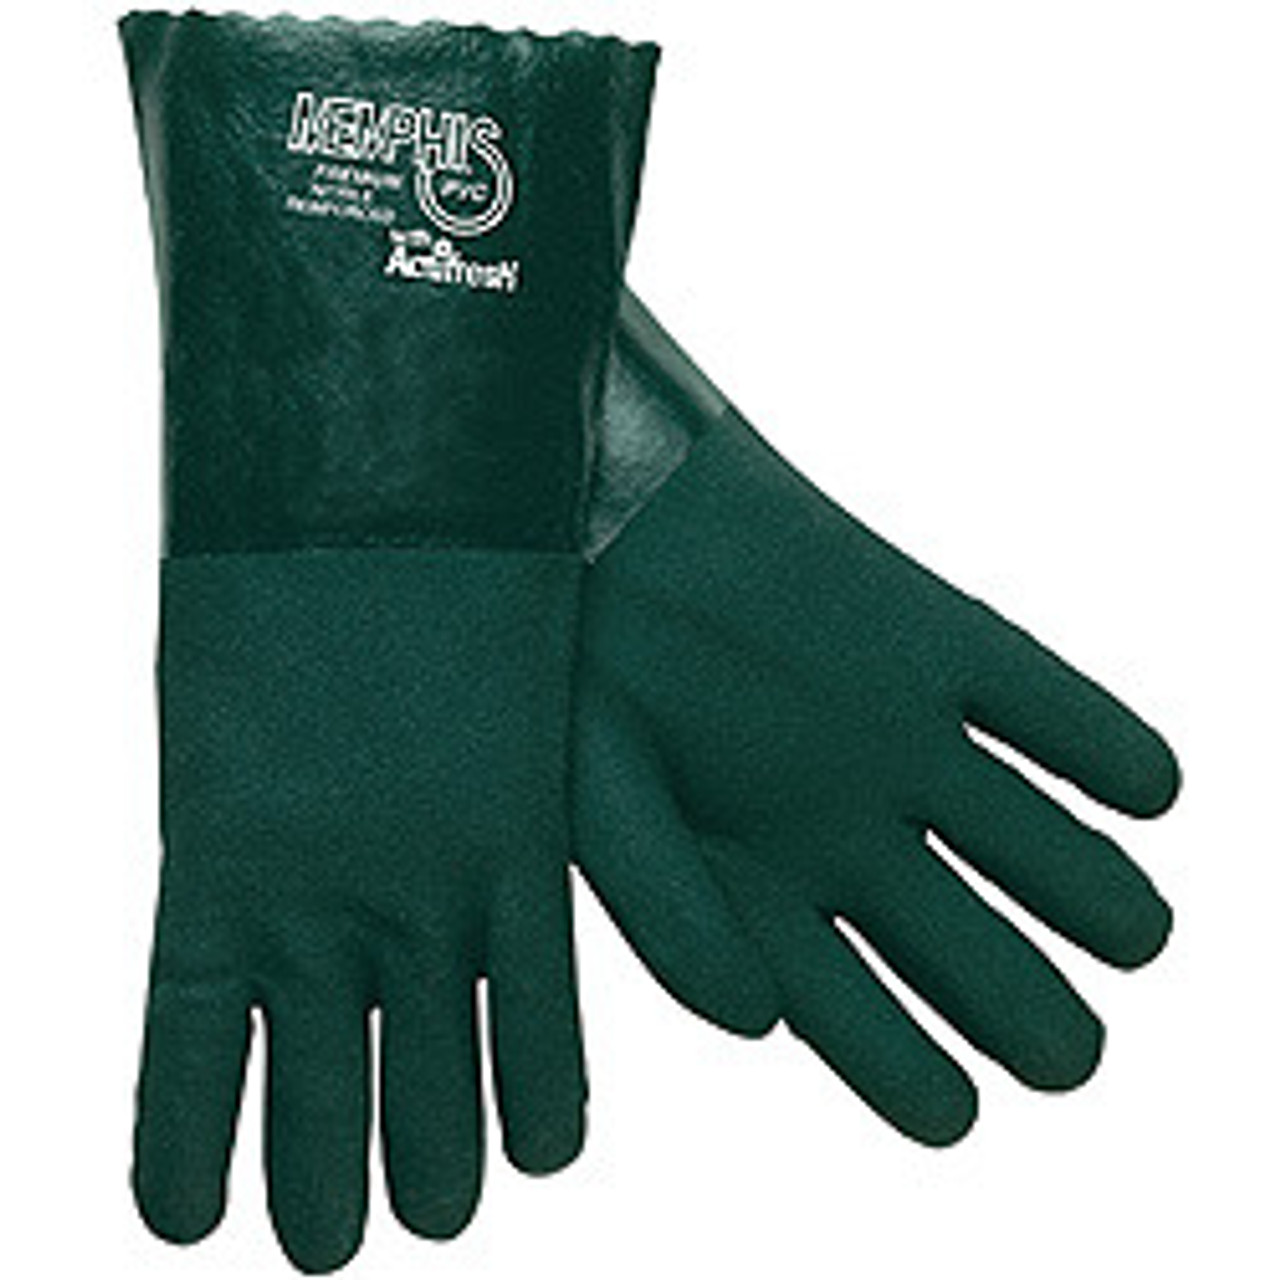 "Memphis Glove 6414 Premium Green PVC Double Dipped Jersey Lining 14"" Gauntlet, Size Lg. (12 Pair)"